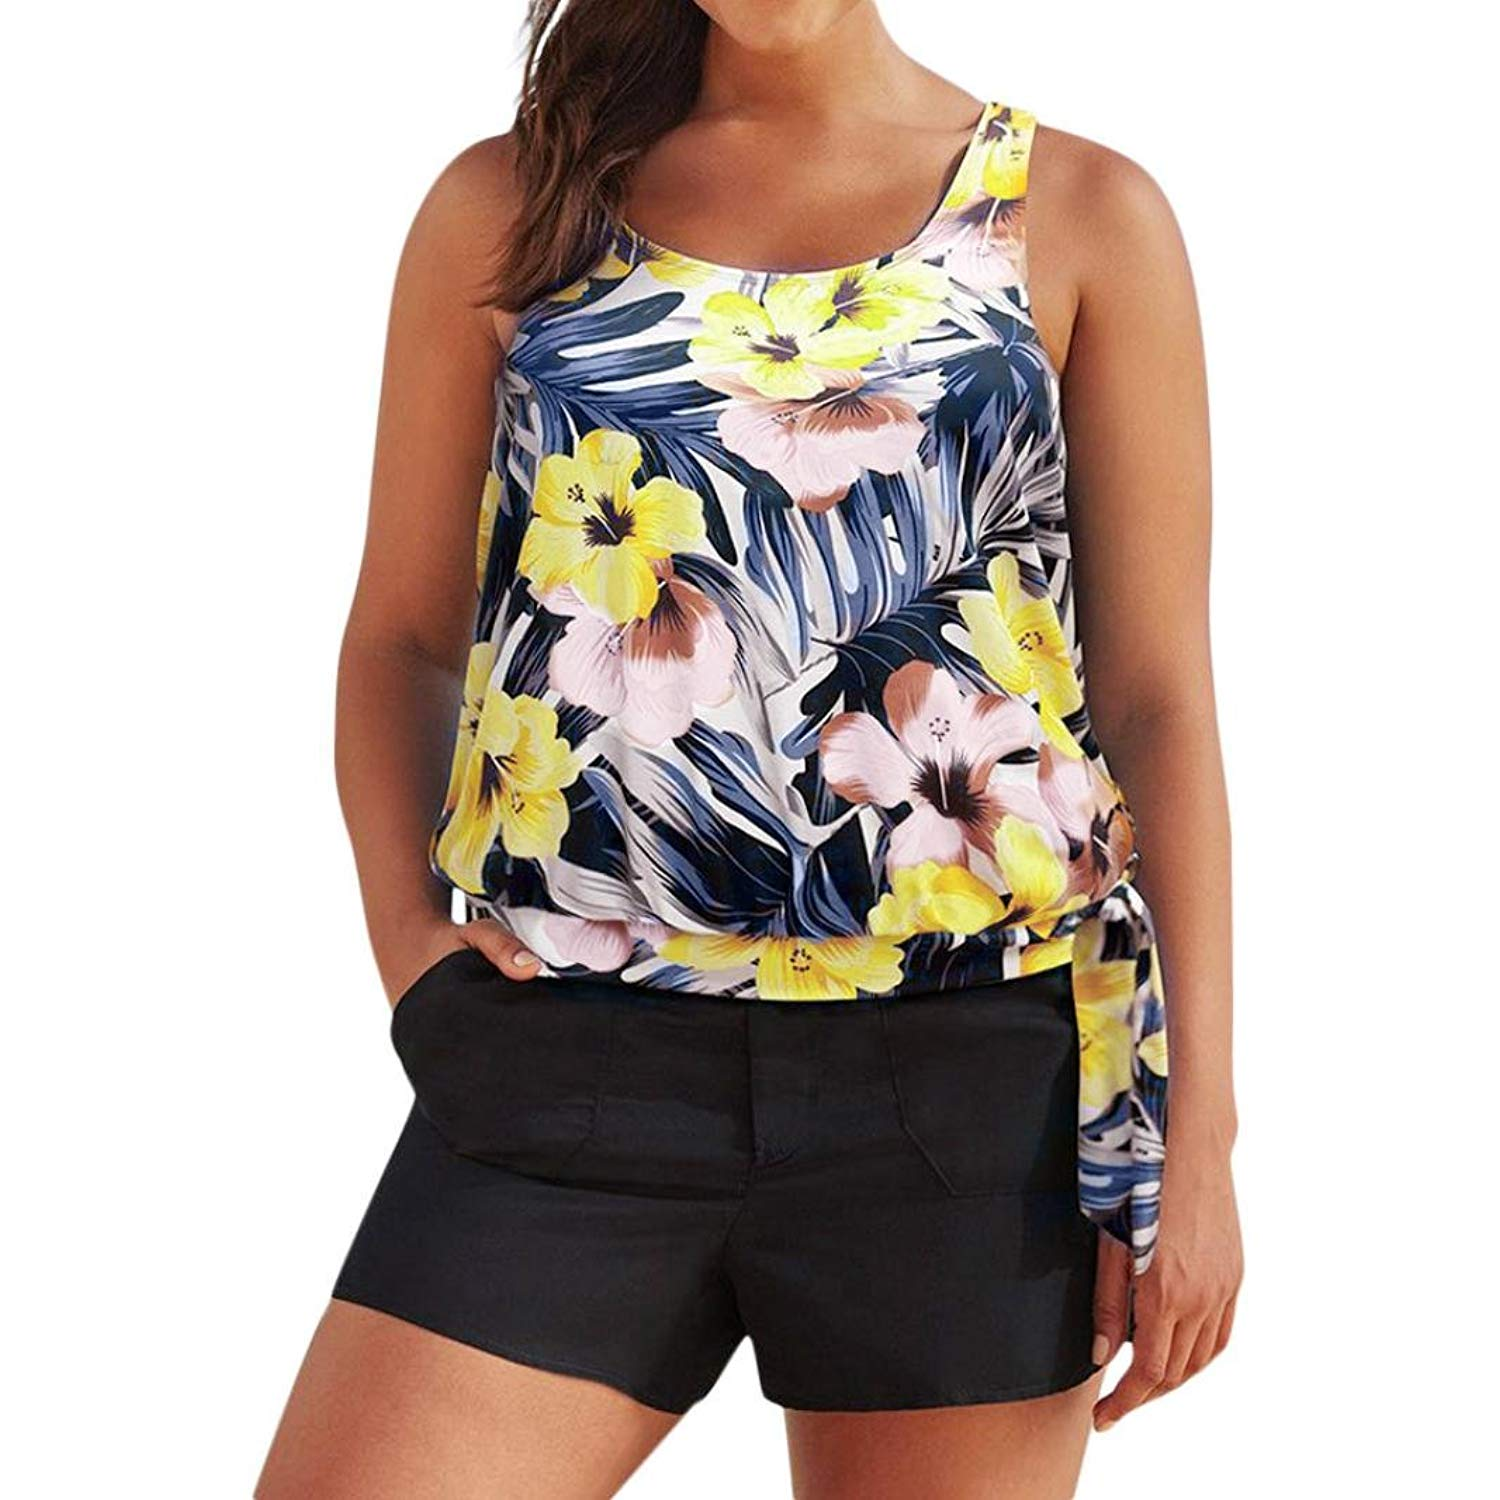 03bdb5321926d Get Quotations · WM & MW Plus Size Women Swimsuits,Fashion Tankini Sets  with Boy Shorts Pockets Floral